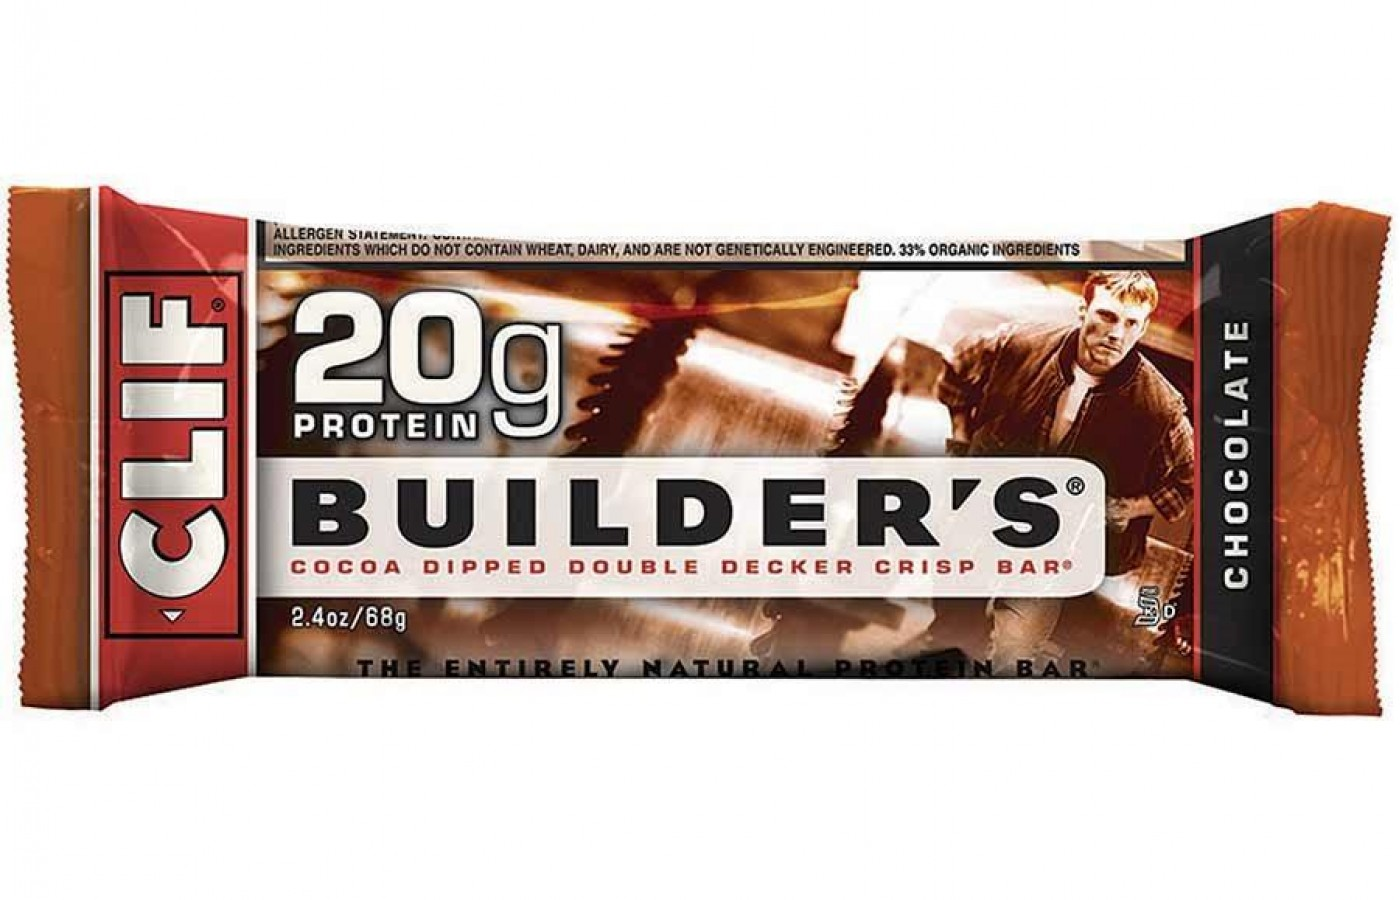 A classic Chocolate Clif Builder's bar.